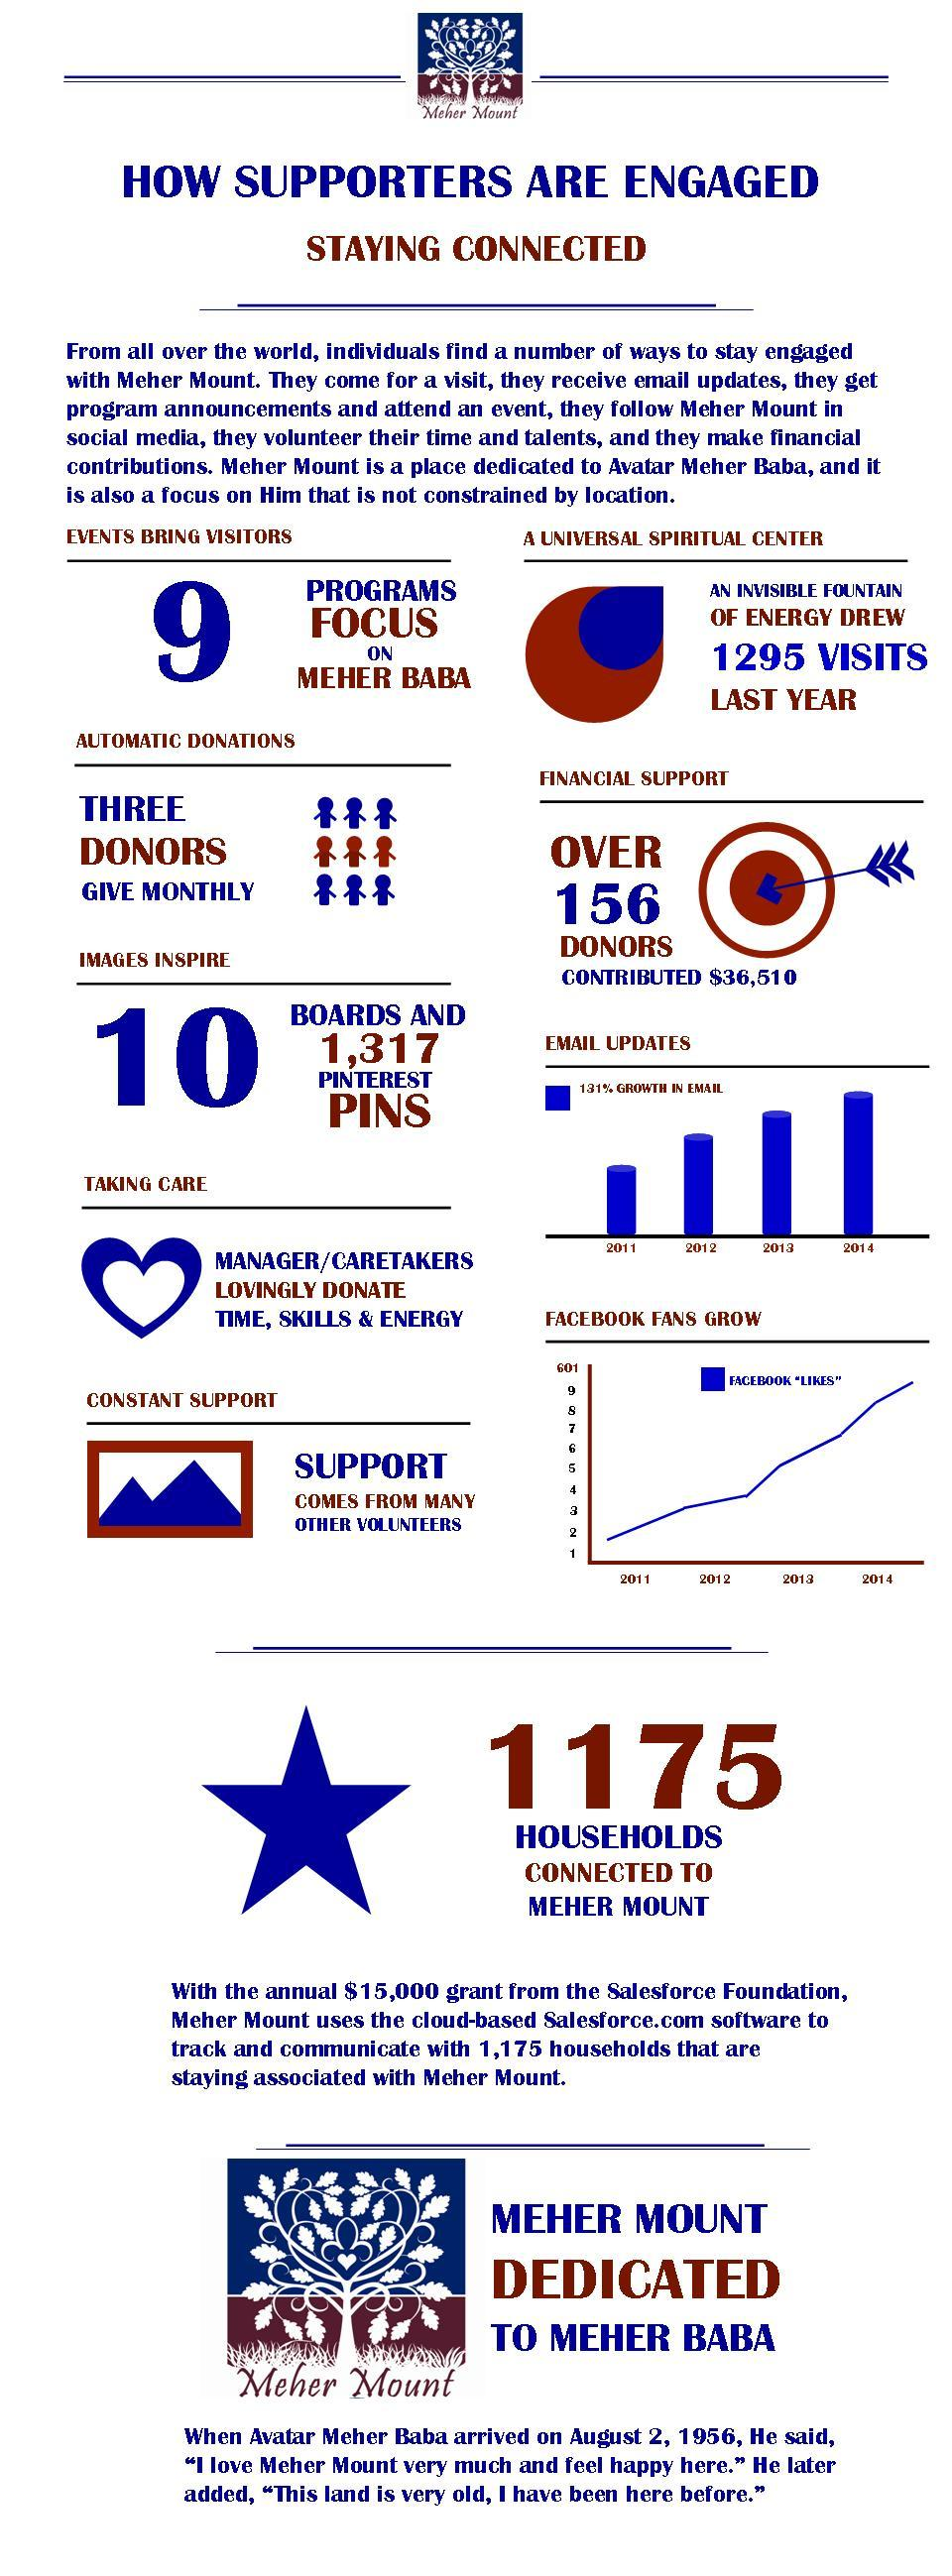 AN INFO-GRAPHIC of engagement with Meher Mount through email, social media, postal mail, donations, and visiting. Annual figures are from July 1, 2013 through June 30, 2014. Current figures are as of September 15, 2014.